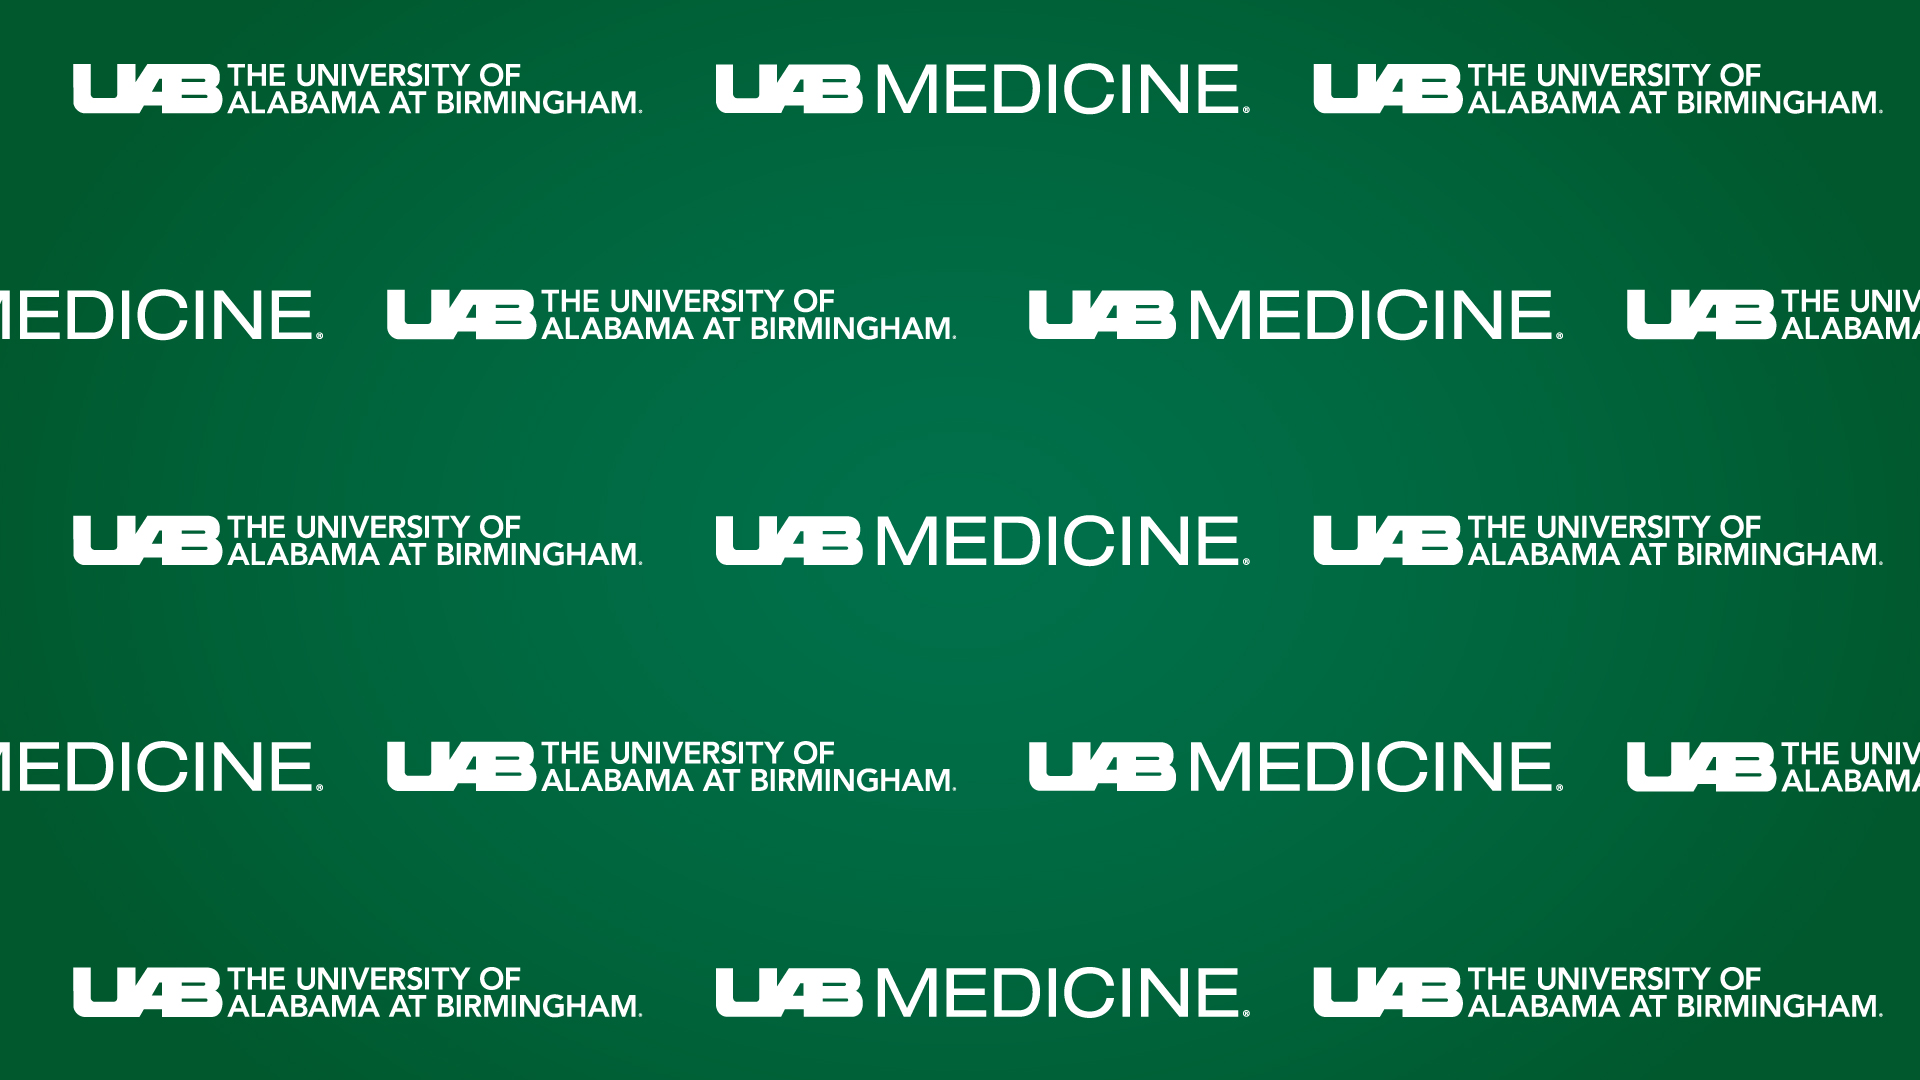 White UAB Medicine logo repeated on green backdrop.